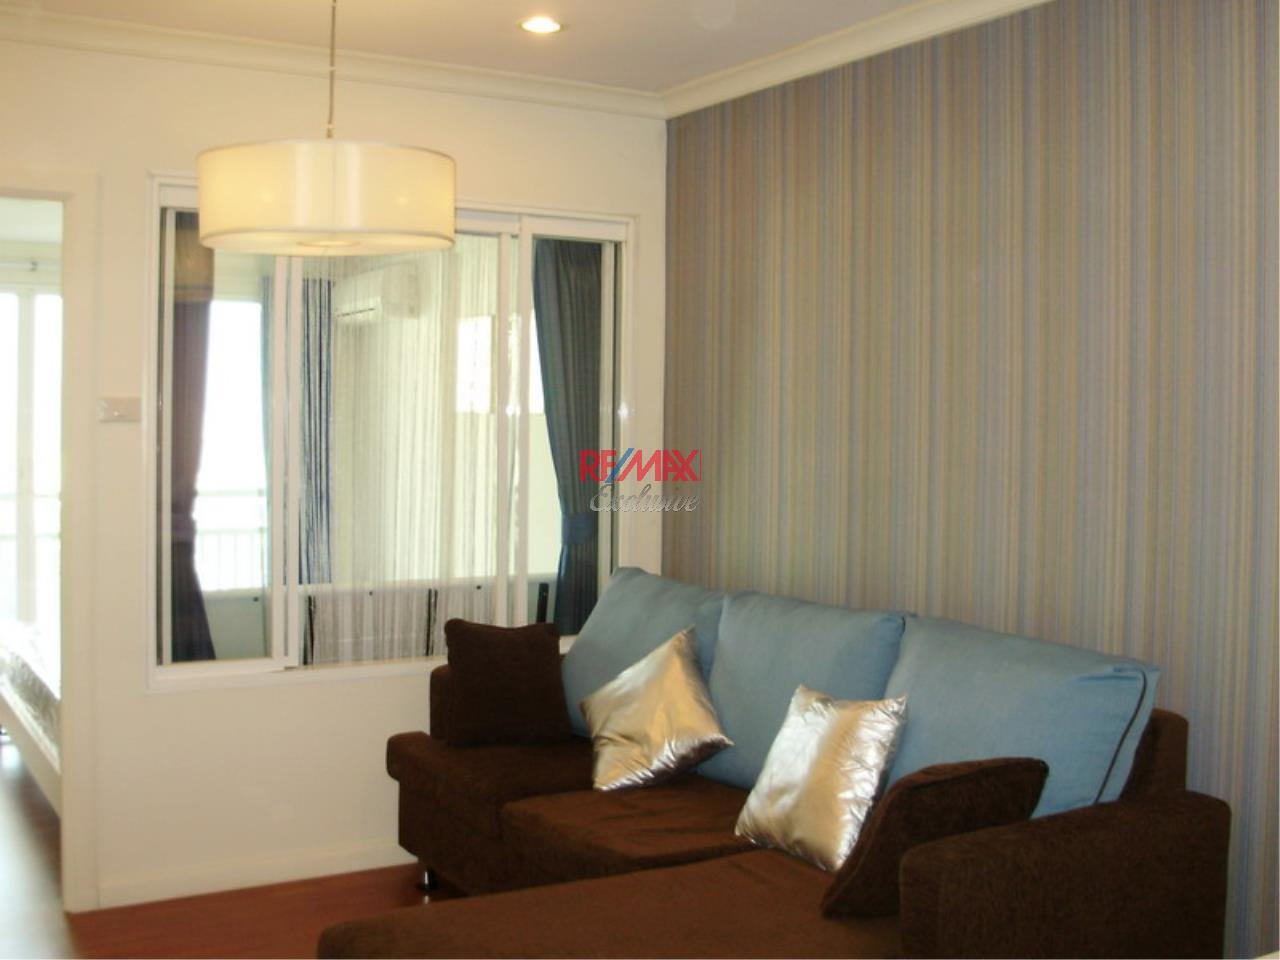 RE/MAX Exclusive Agency's Grand Park View 1 Bedroom nice Decorated for sale 3700000 6